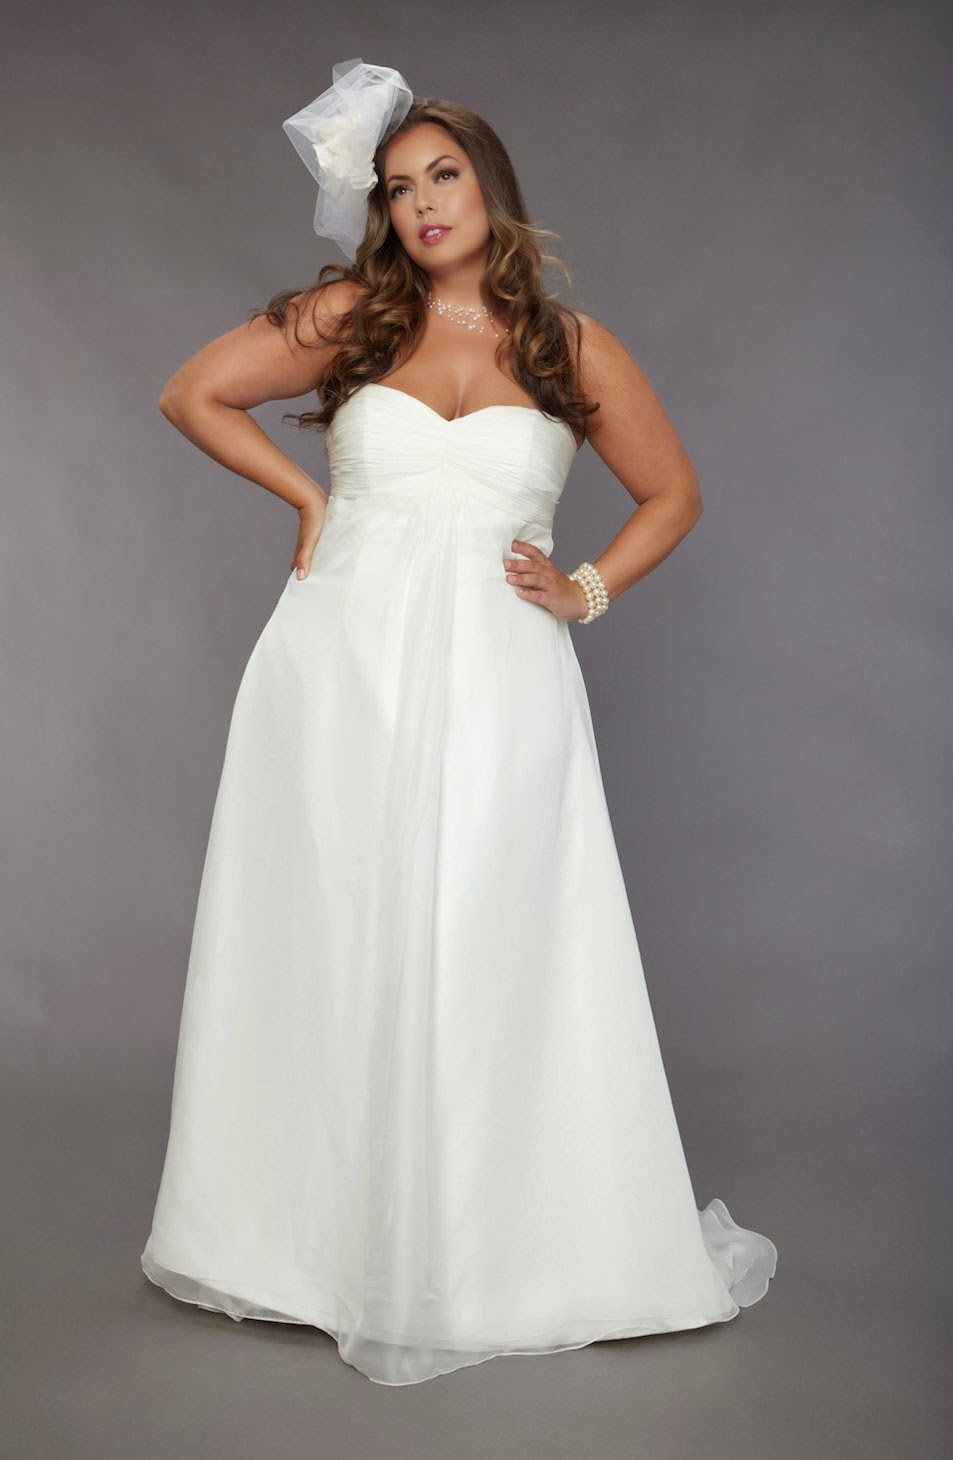 Plus size princess wedding dresses ideas photos hd for Princess plus size wedding dresses